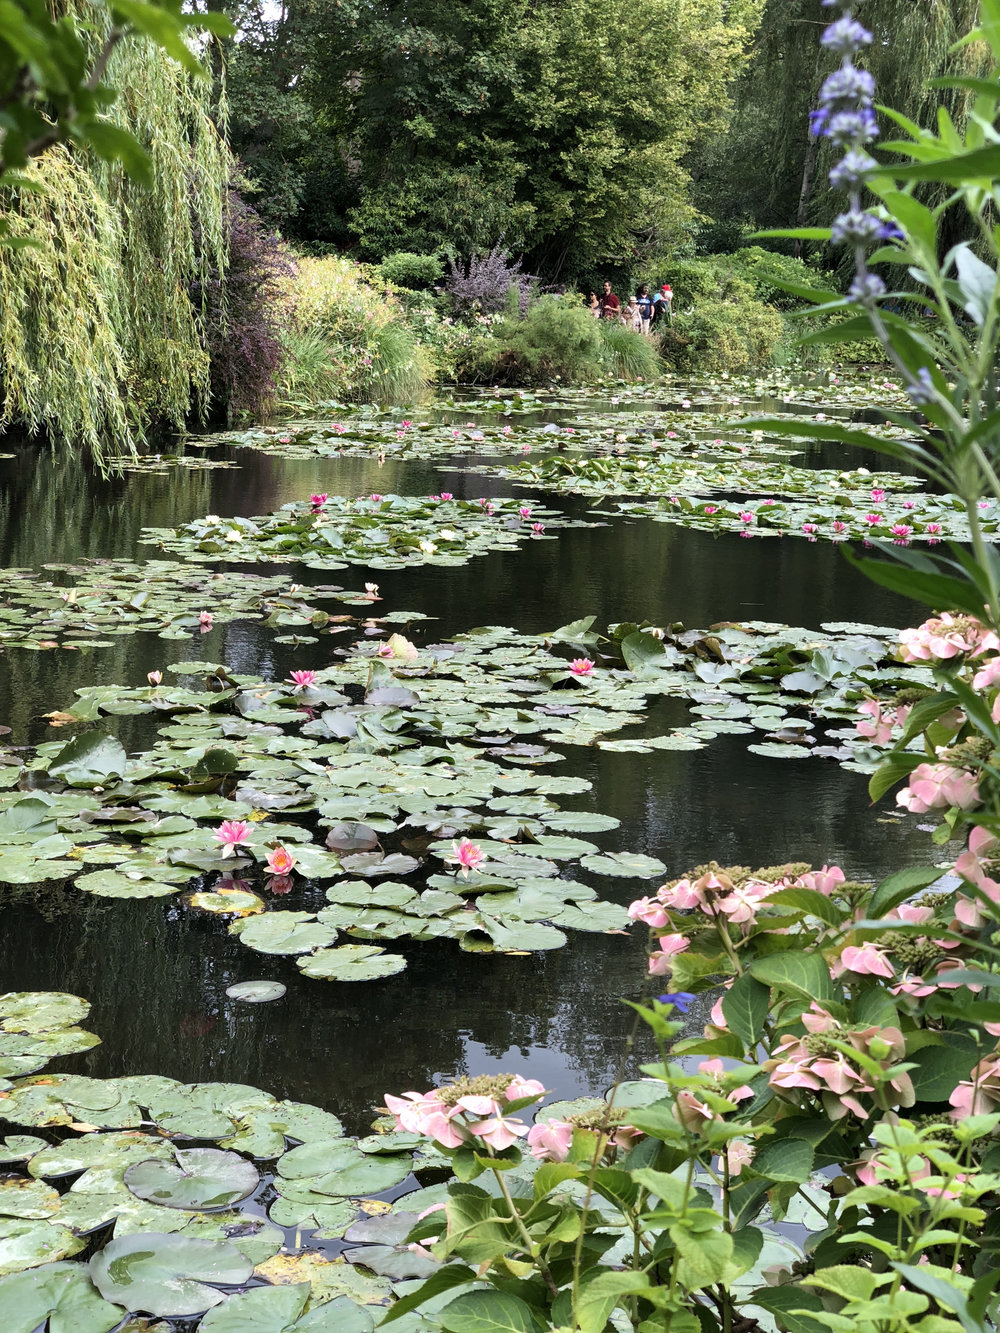 teri_Paris_laura'sbd_monet_giverny_l'orangerie_spiritedtable_photo51.jpg